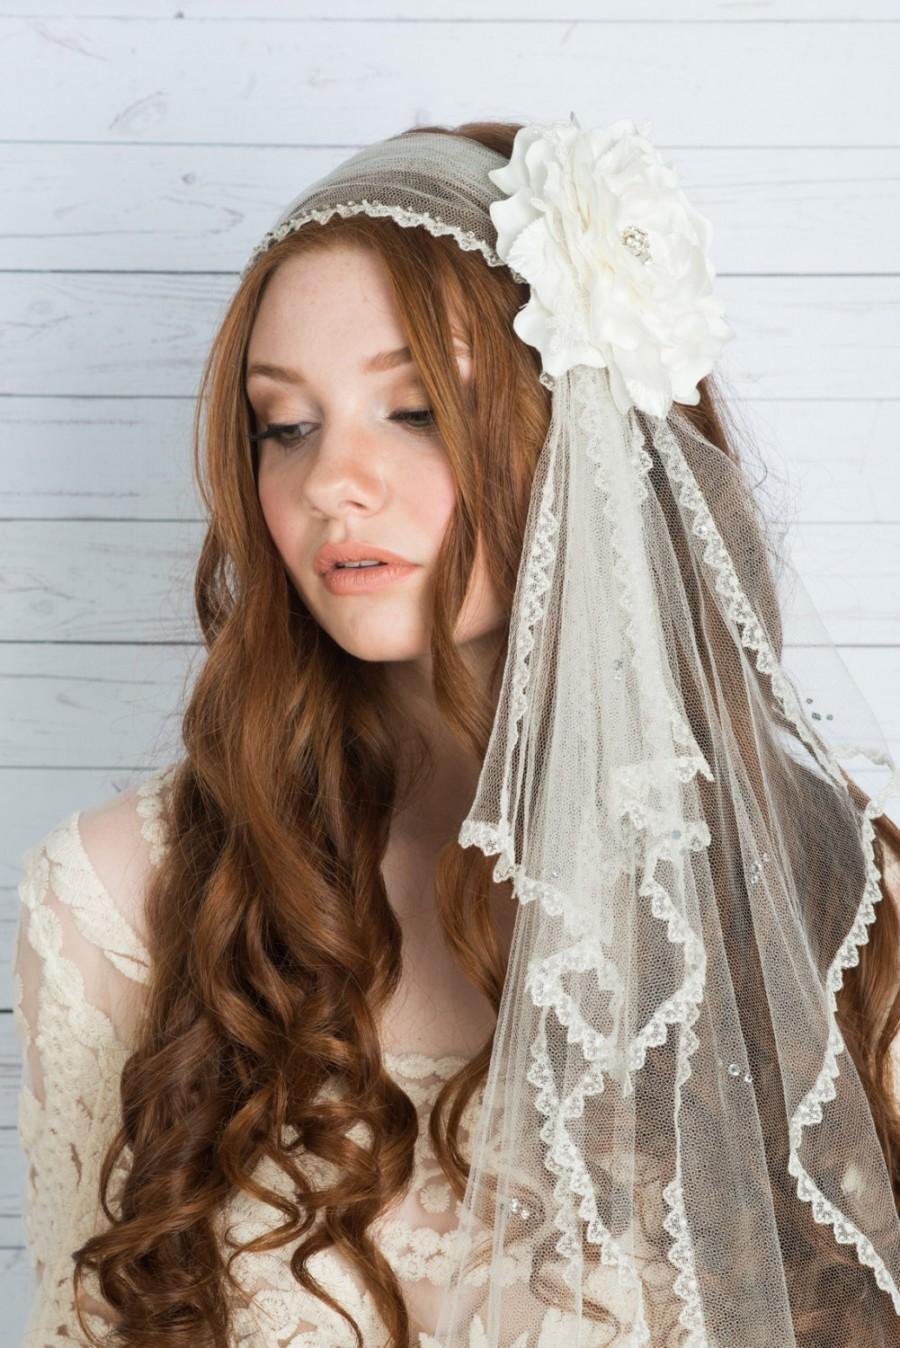 AVA - Silk Headsash Juliet Veil d23dd8cbfd7